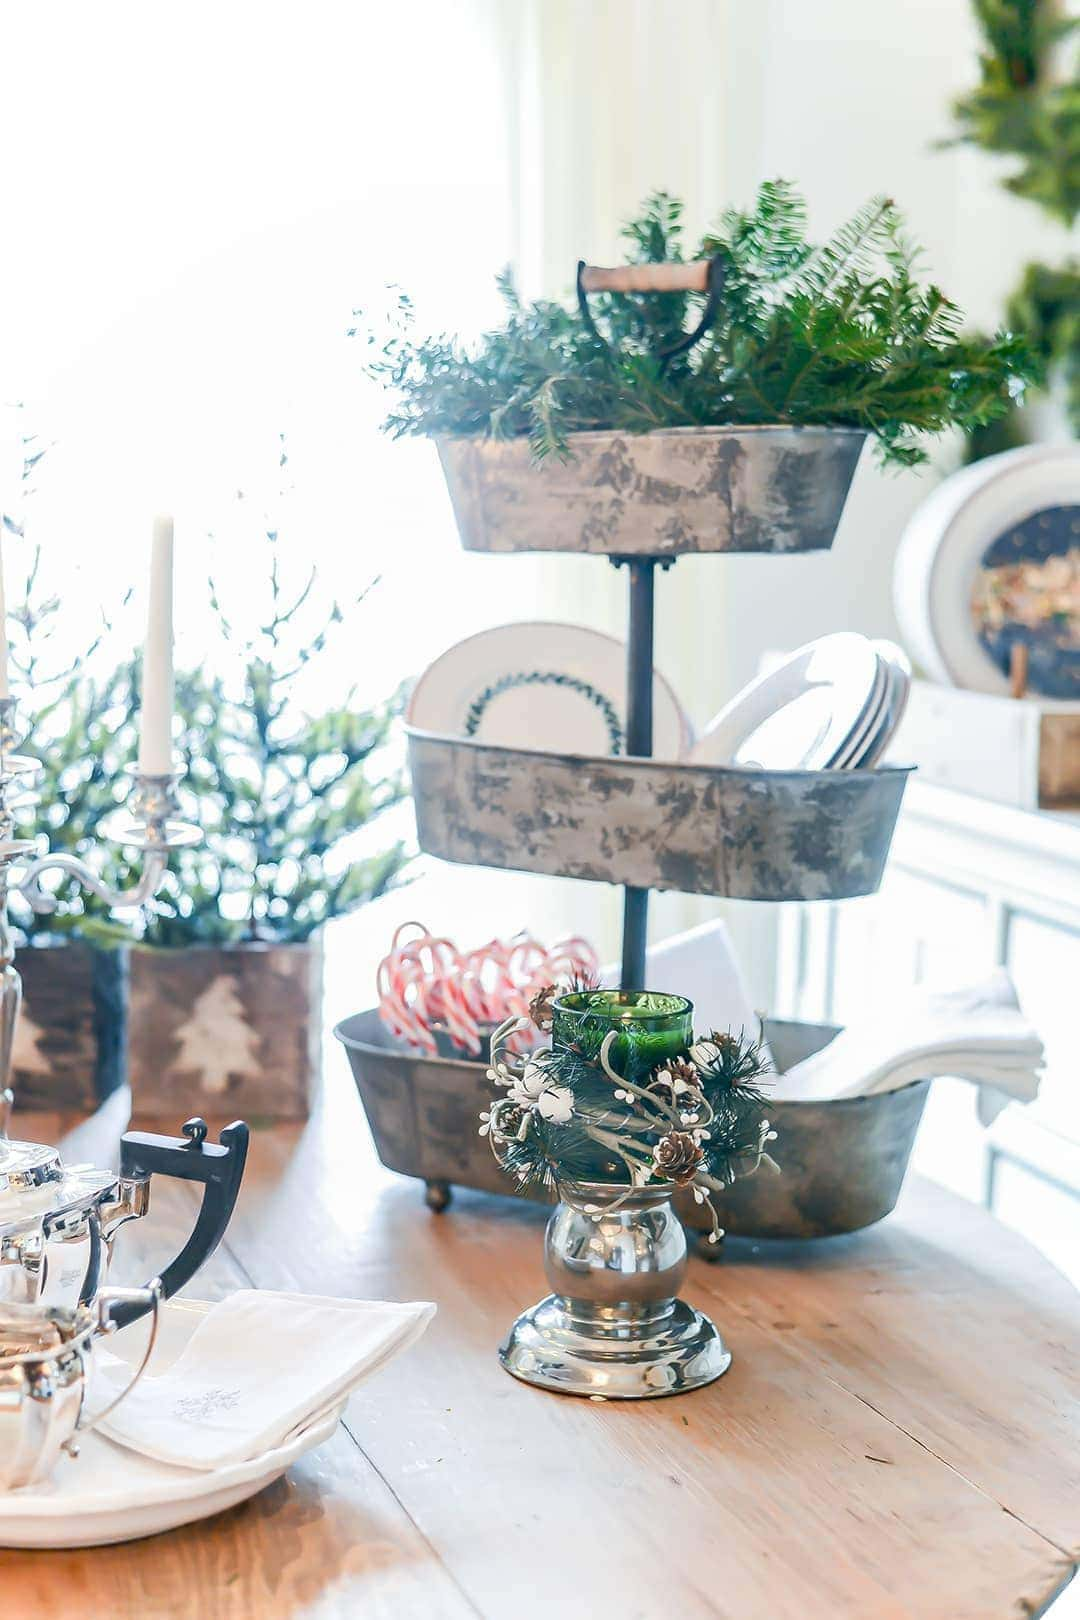 A wooden table is dressed with rustic tin accents and fresh greenery. Including a 3 tiered serving tray of rustic metal holding candy canes and greenery as well as mini Christmas trees in wooden rustic pots.